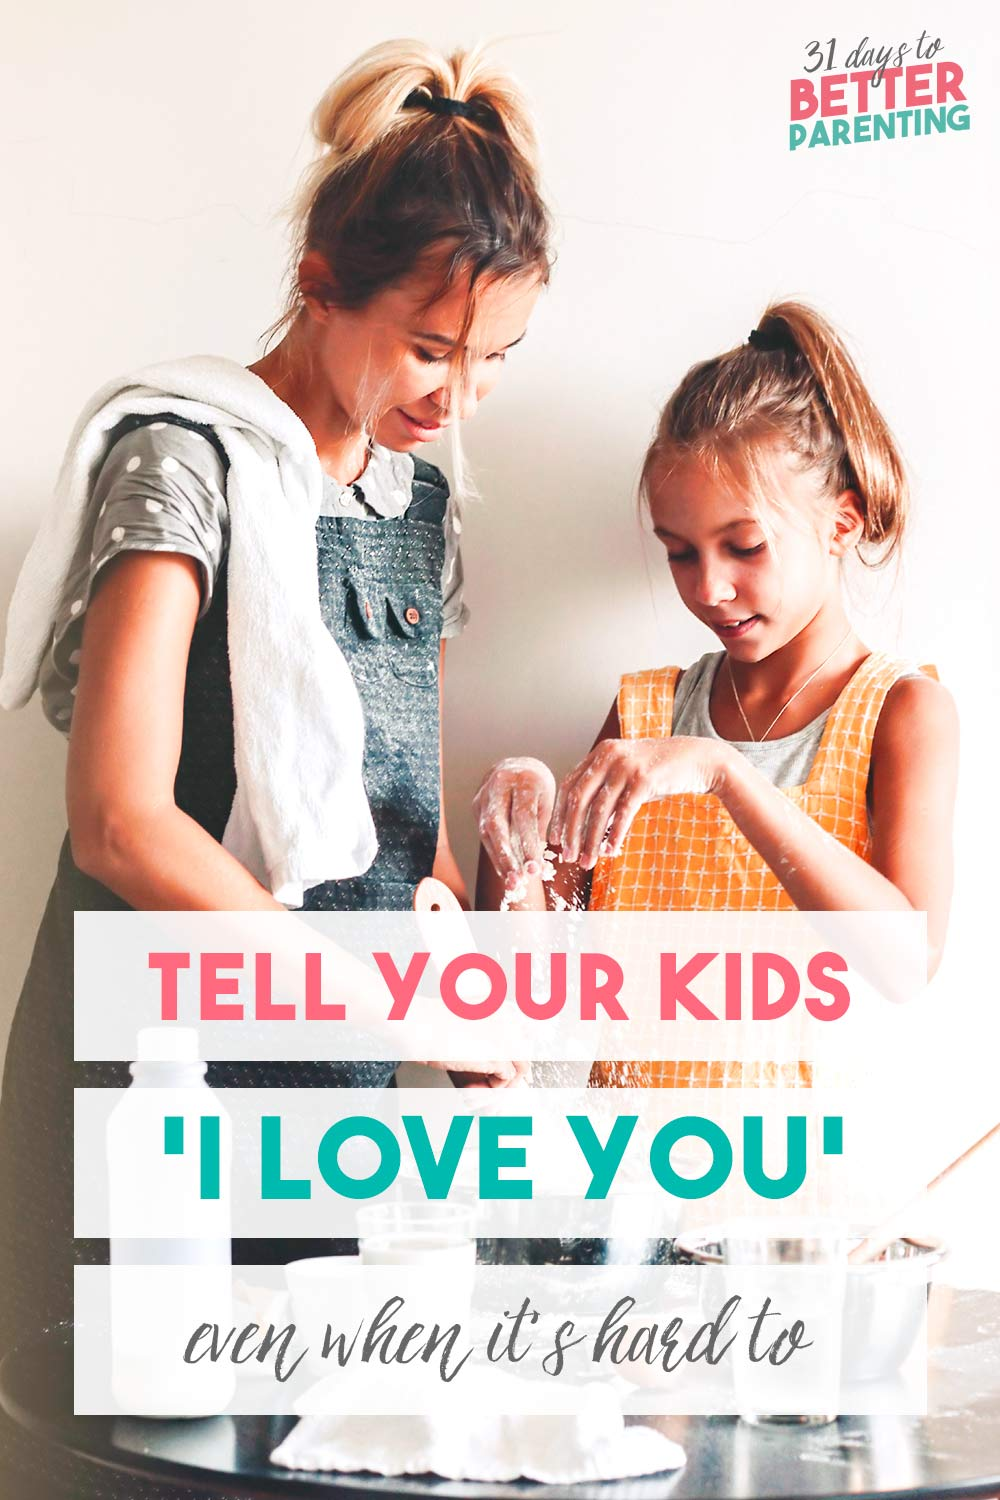 "It's easy to tell our kids ""I love you"" during happy times. But it's just as important to tell your kids you love them, even when it's hard to. Here's why."